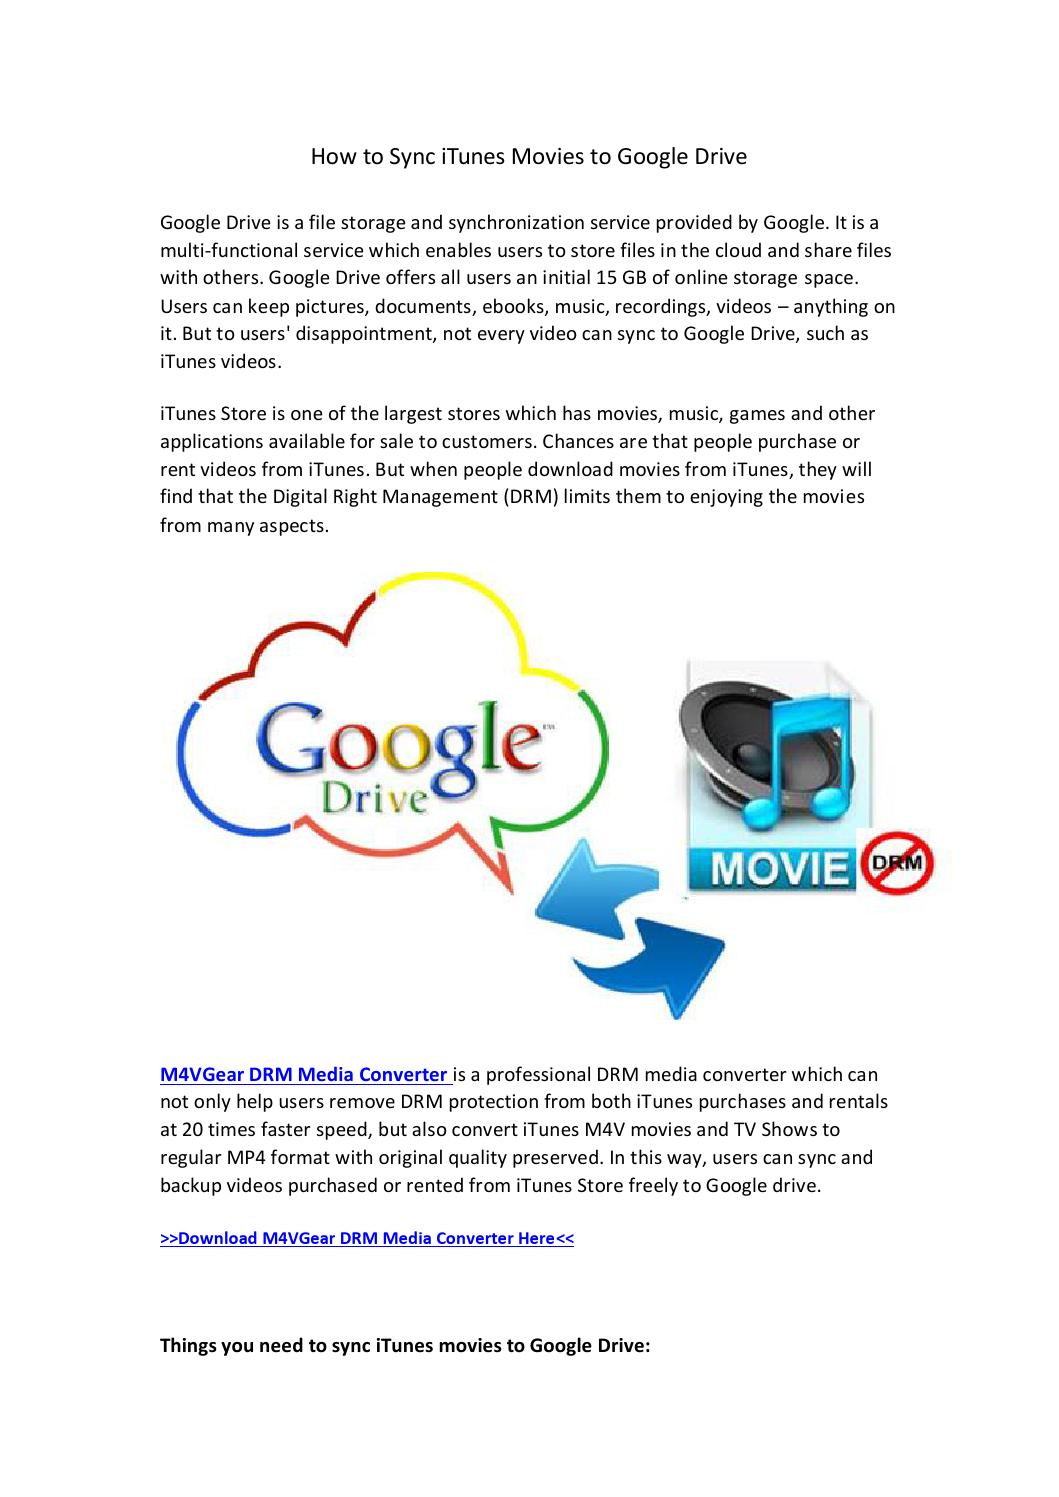 Back up iTunes videos with google drive by happy life - issuu